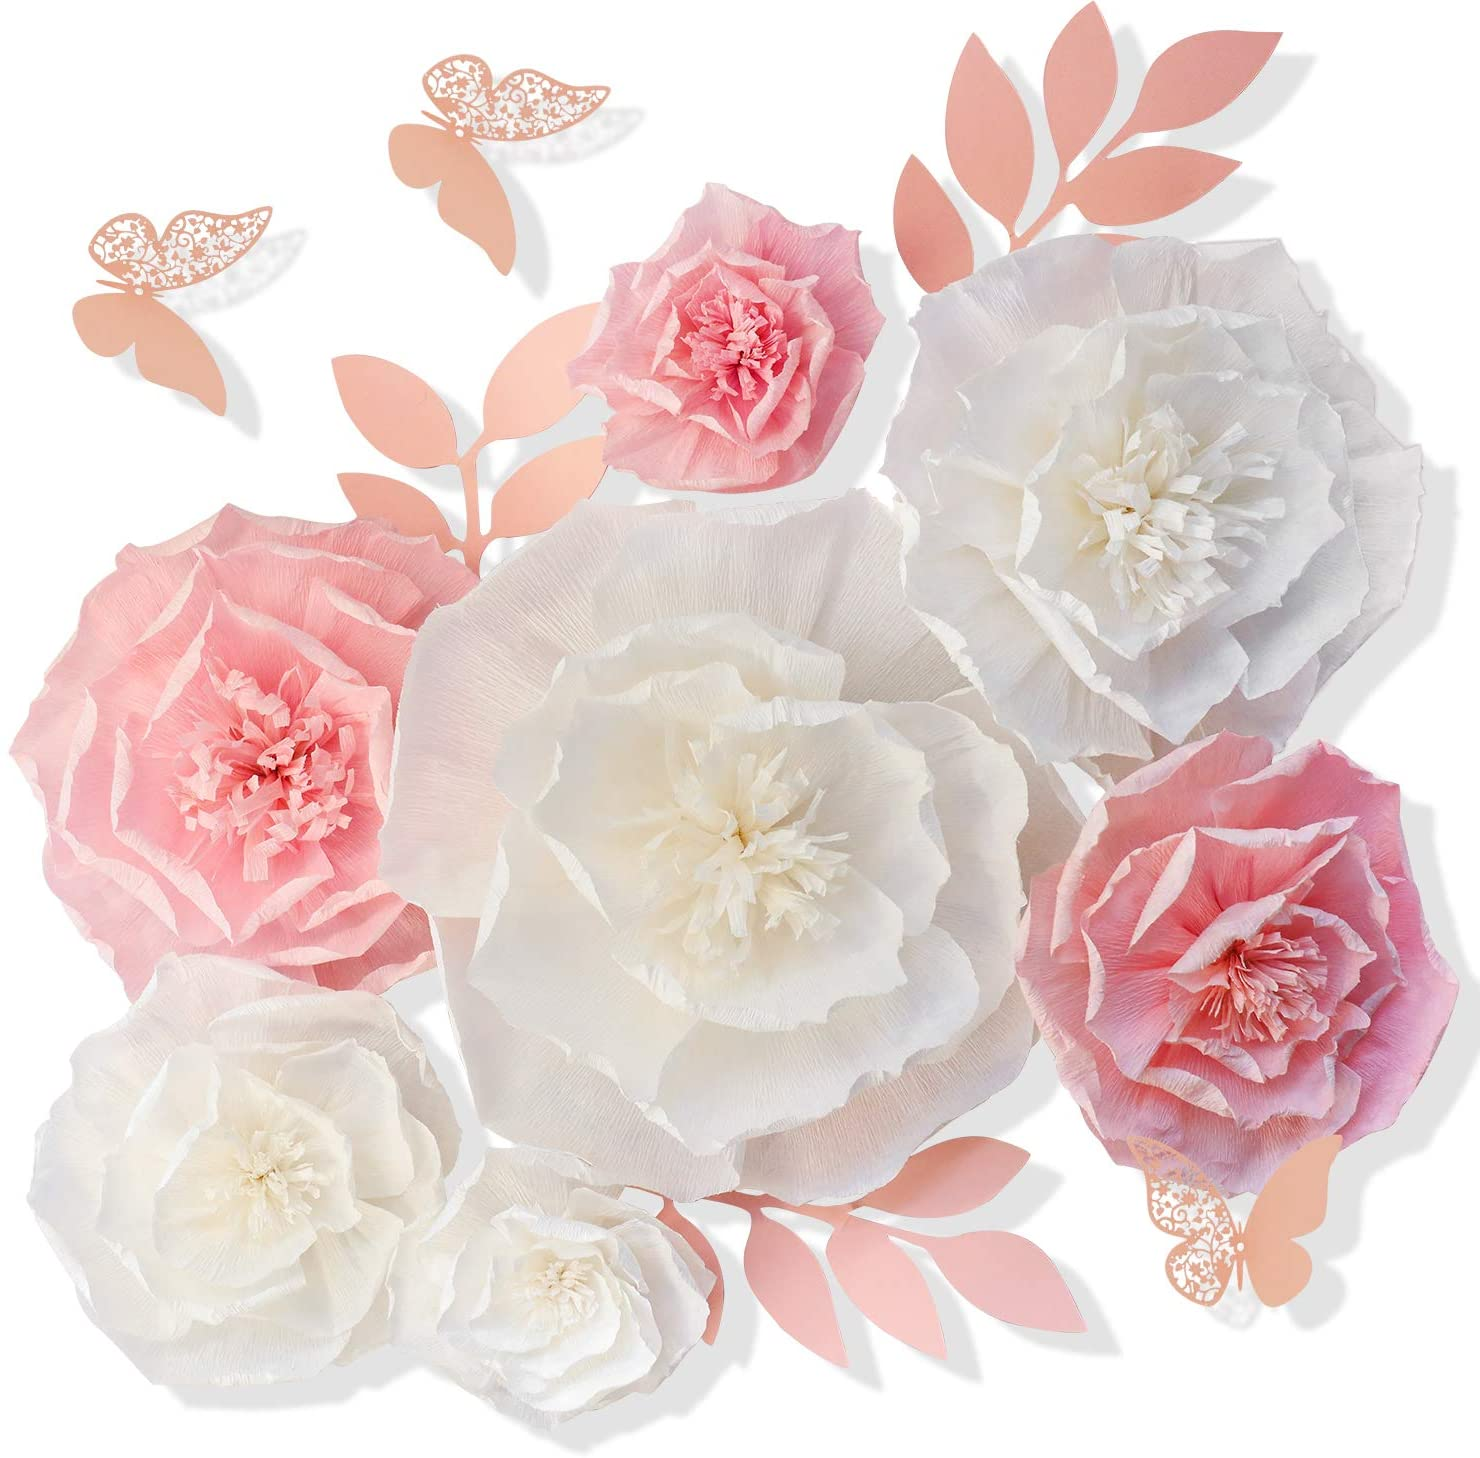 "13 Pieces 3D Paper Flowers Pink White with Trees 10"" 8"" 6"" 4"" Craft DIY Large Wall Decorations Pom Pom Giant Backdrop Photo Booth Baby Shower Decor Centerpiece Wedding Birthday Party Craft Art"